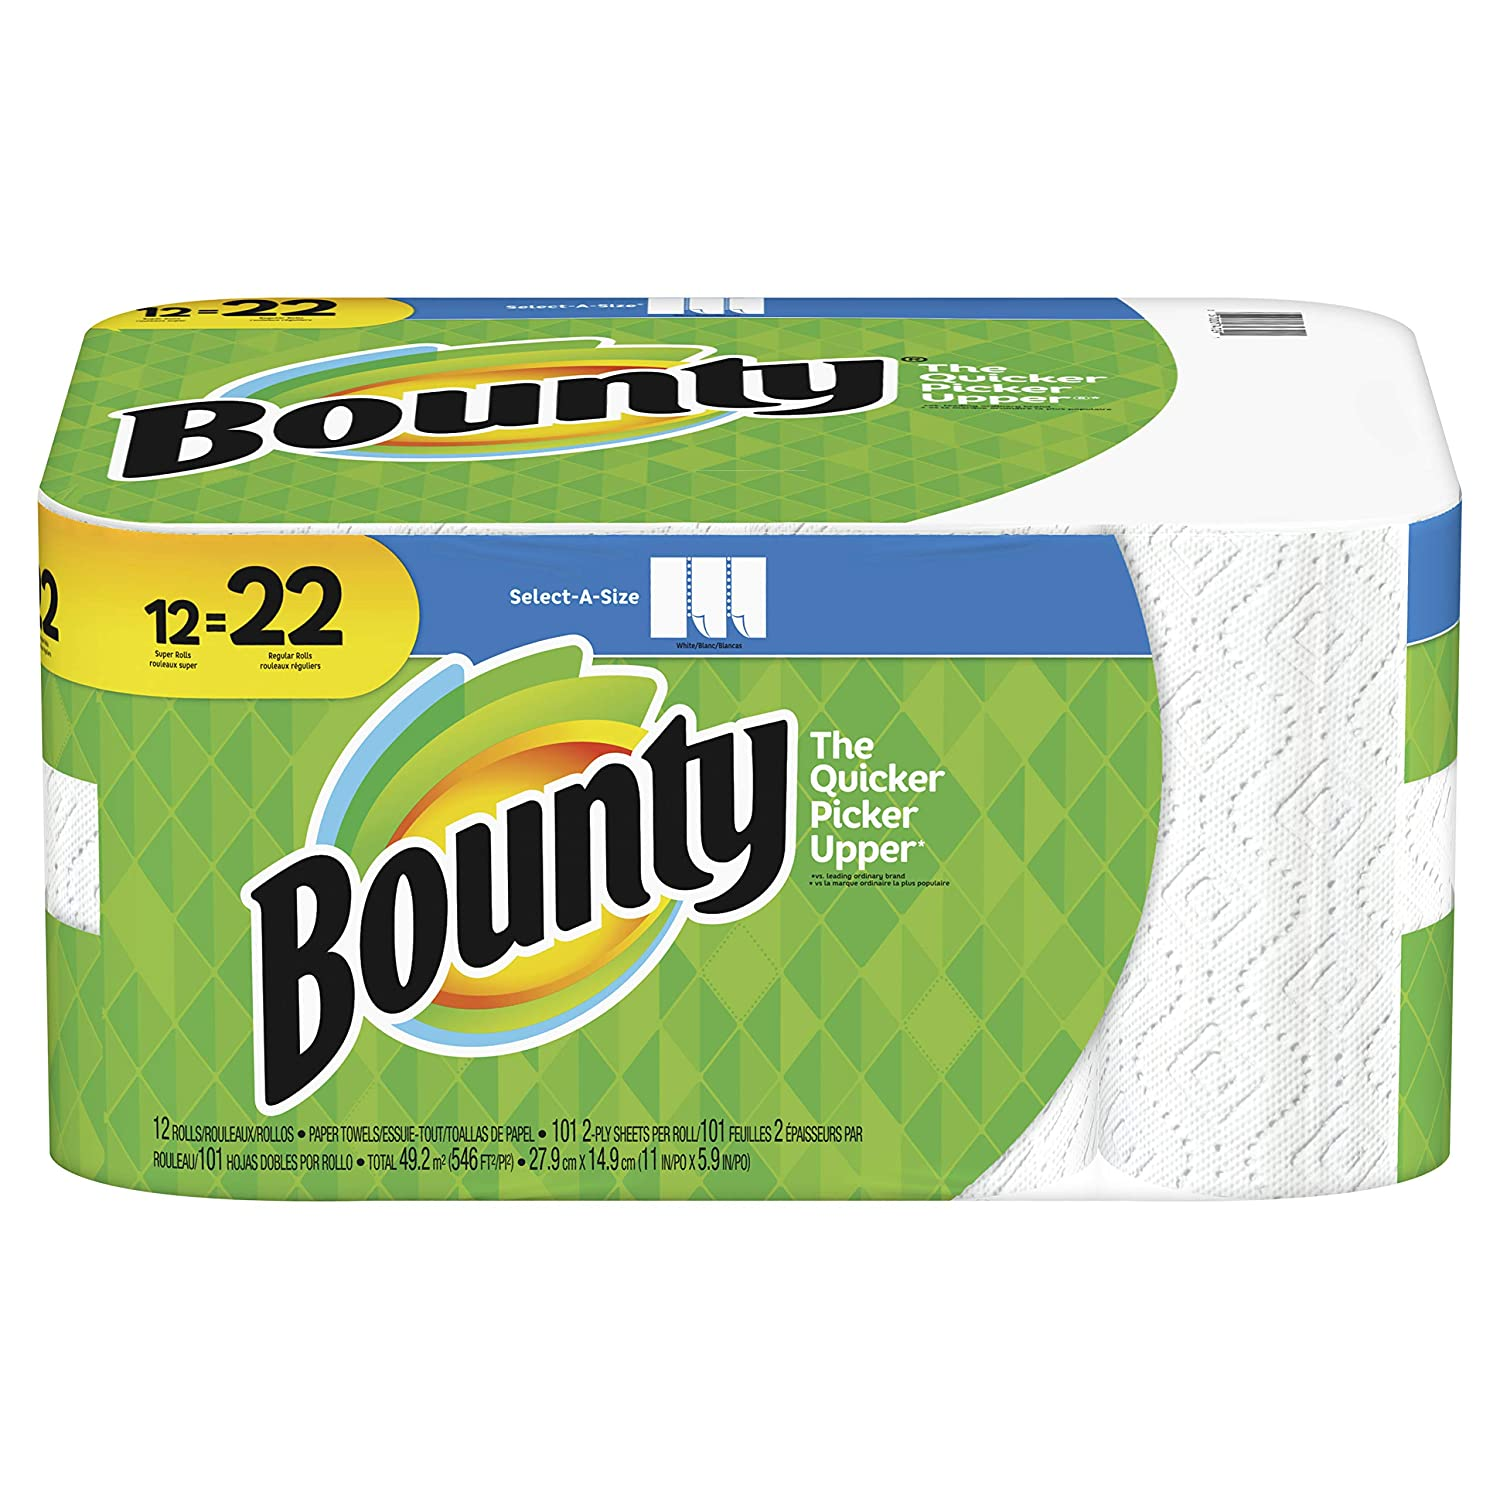 Amazon.com: ZAZ Bounty Select-A-Size Paper Paper Towels, 15 Jumbo Rolls: Health & Personal Care